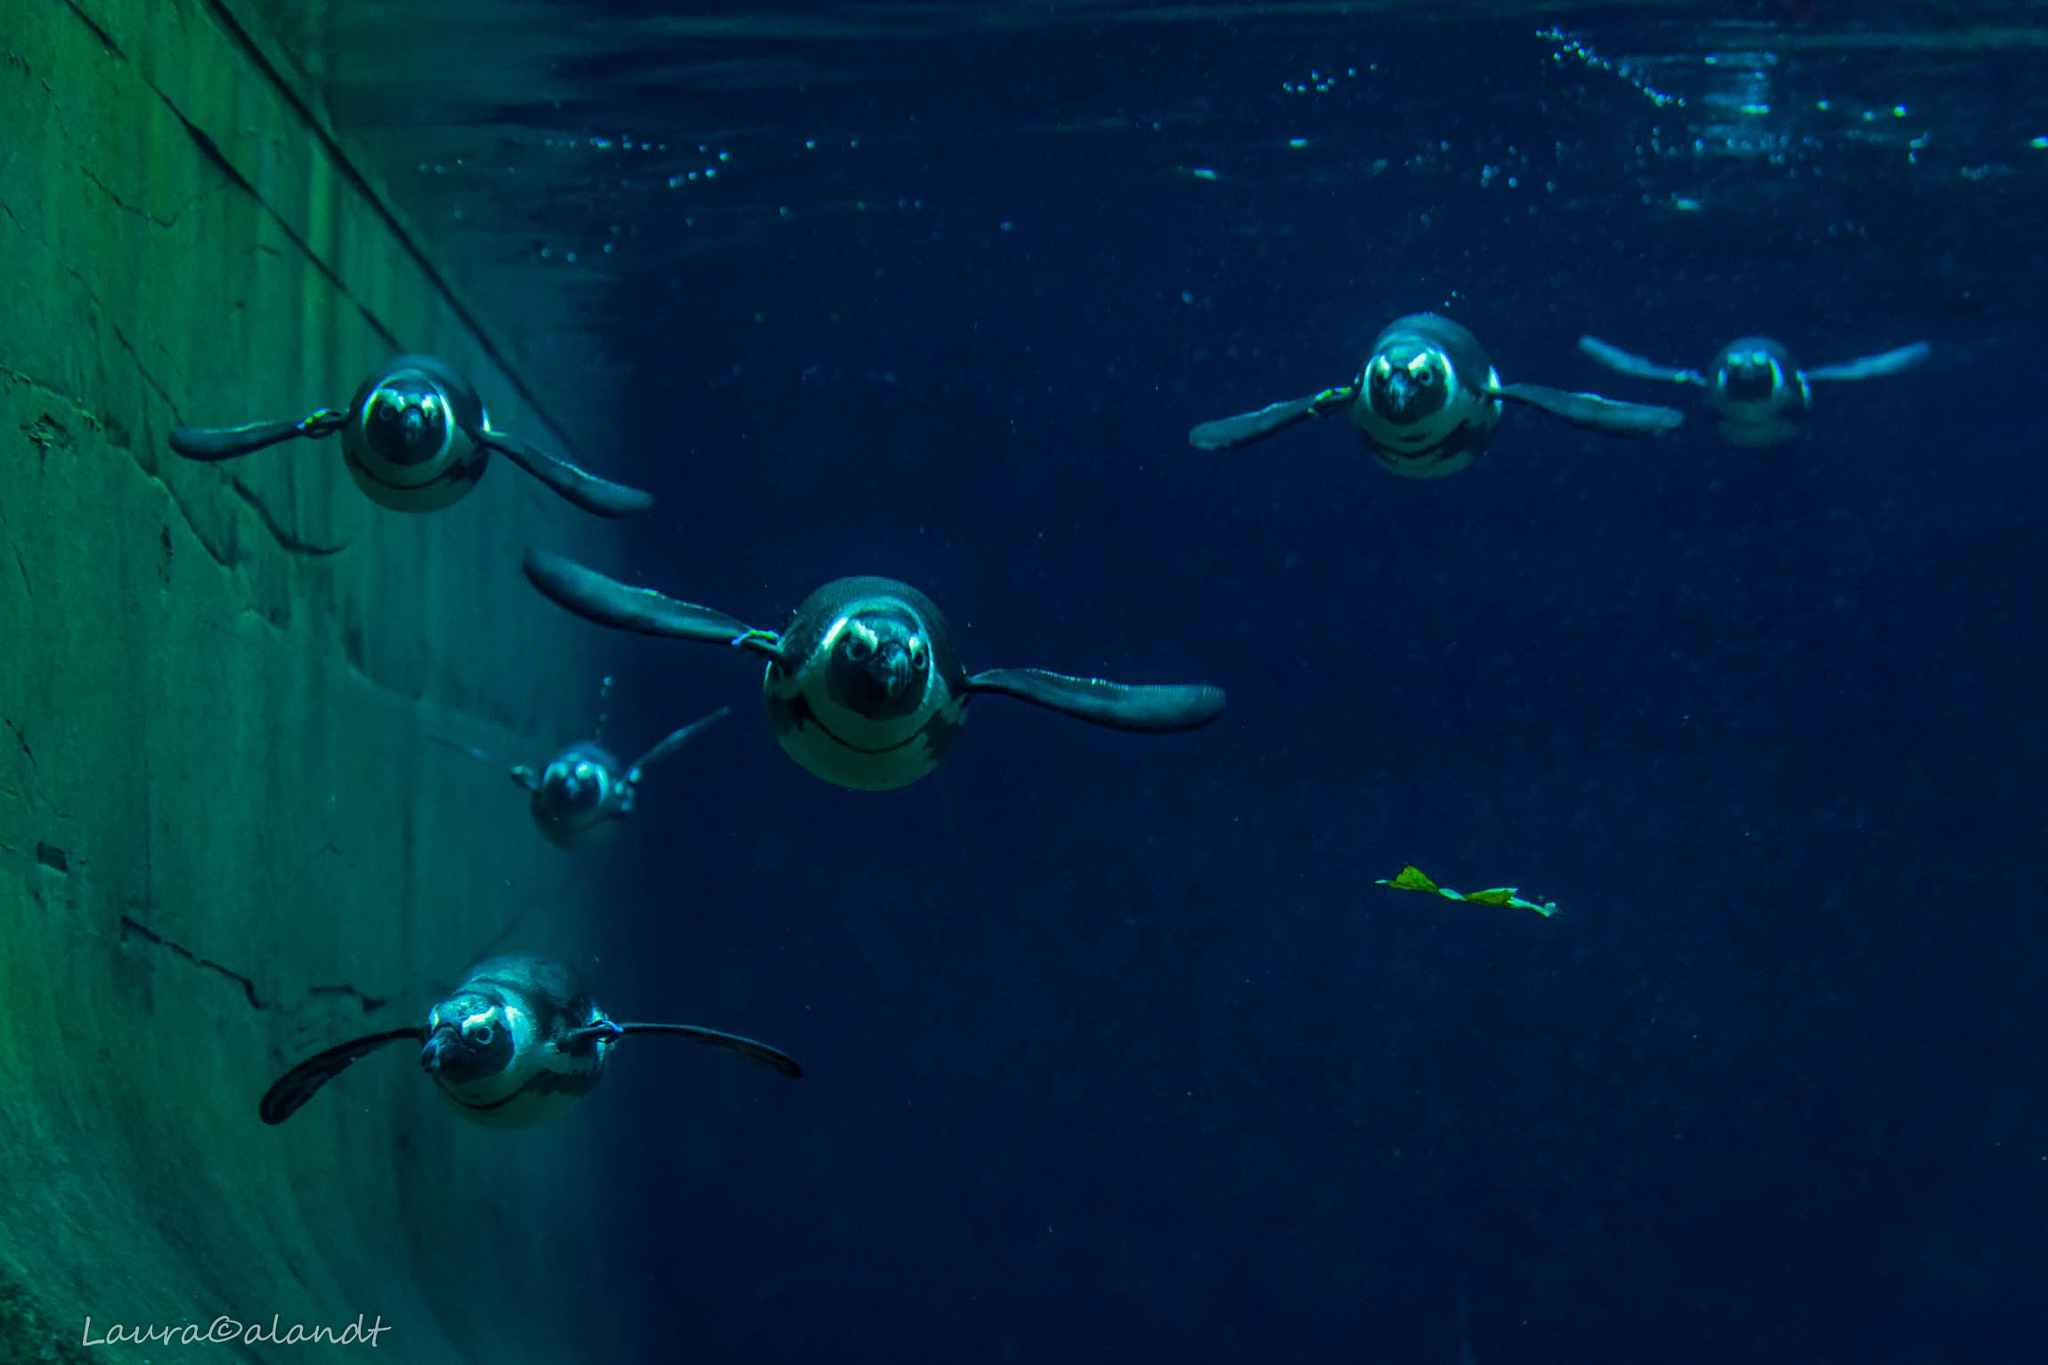 Swimming pinguins by Laura Calandt